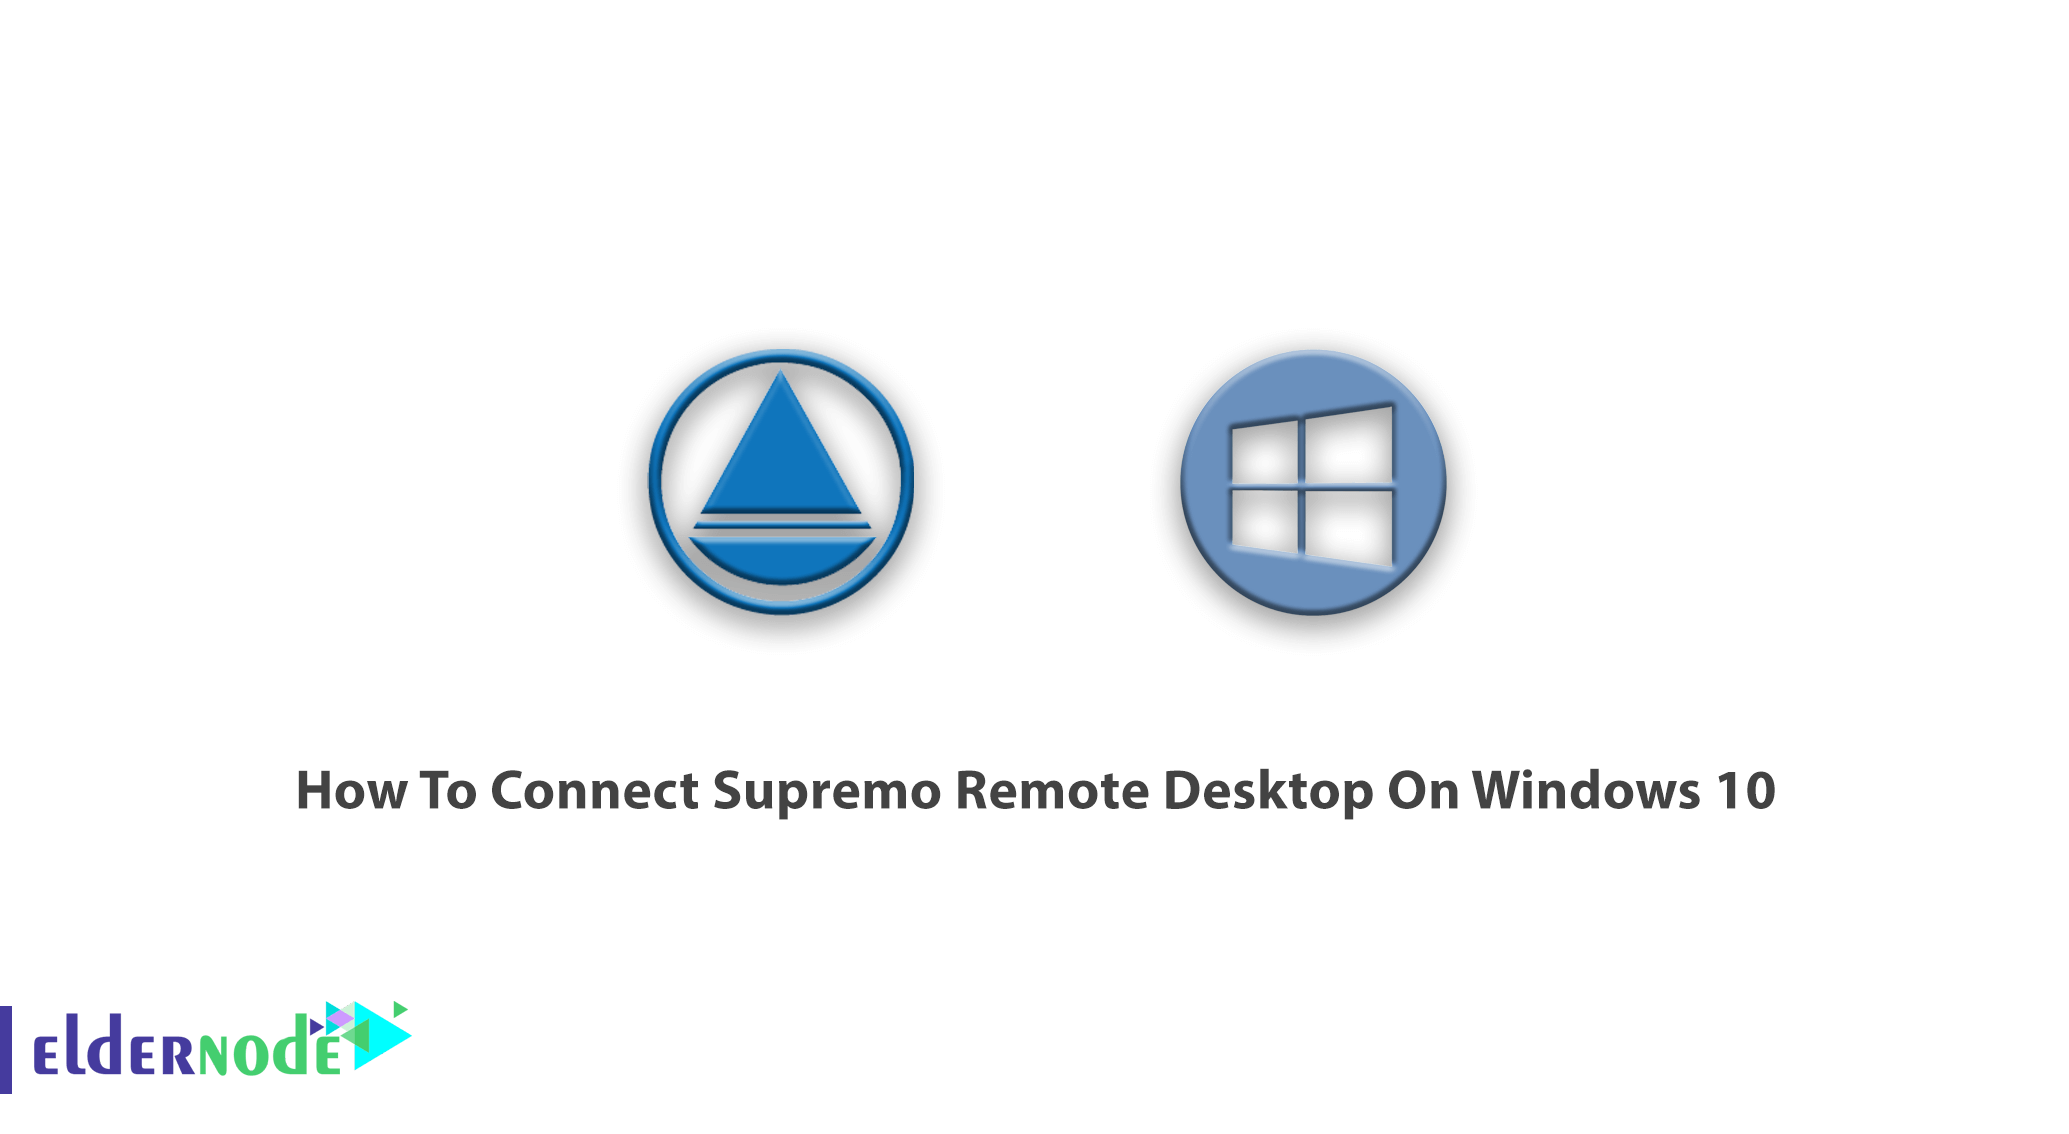 How To Connect Supremo Remote Desktop On Windows 10